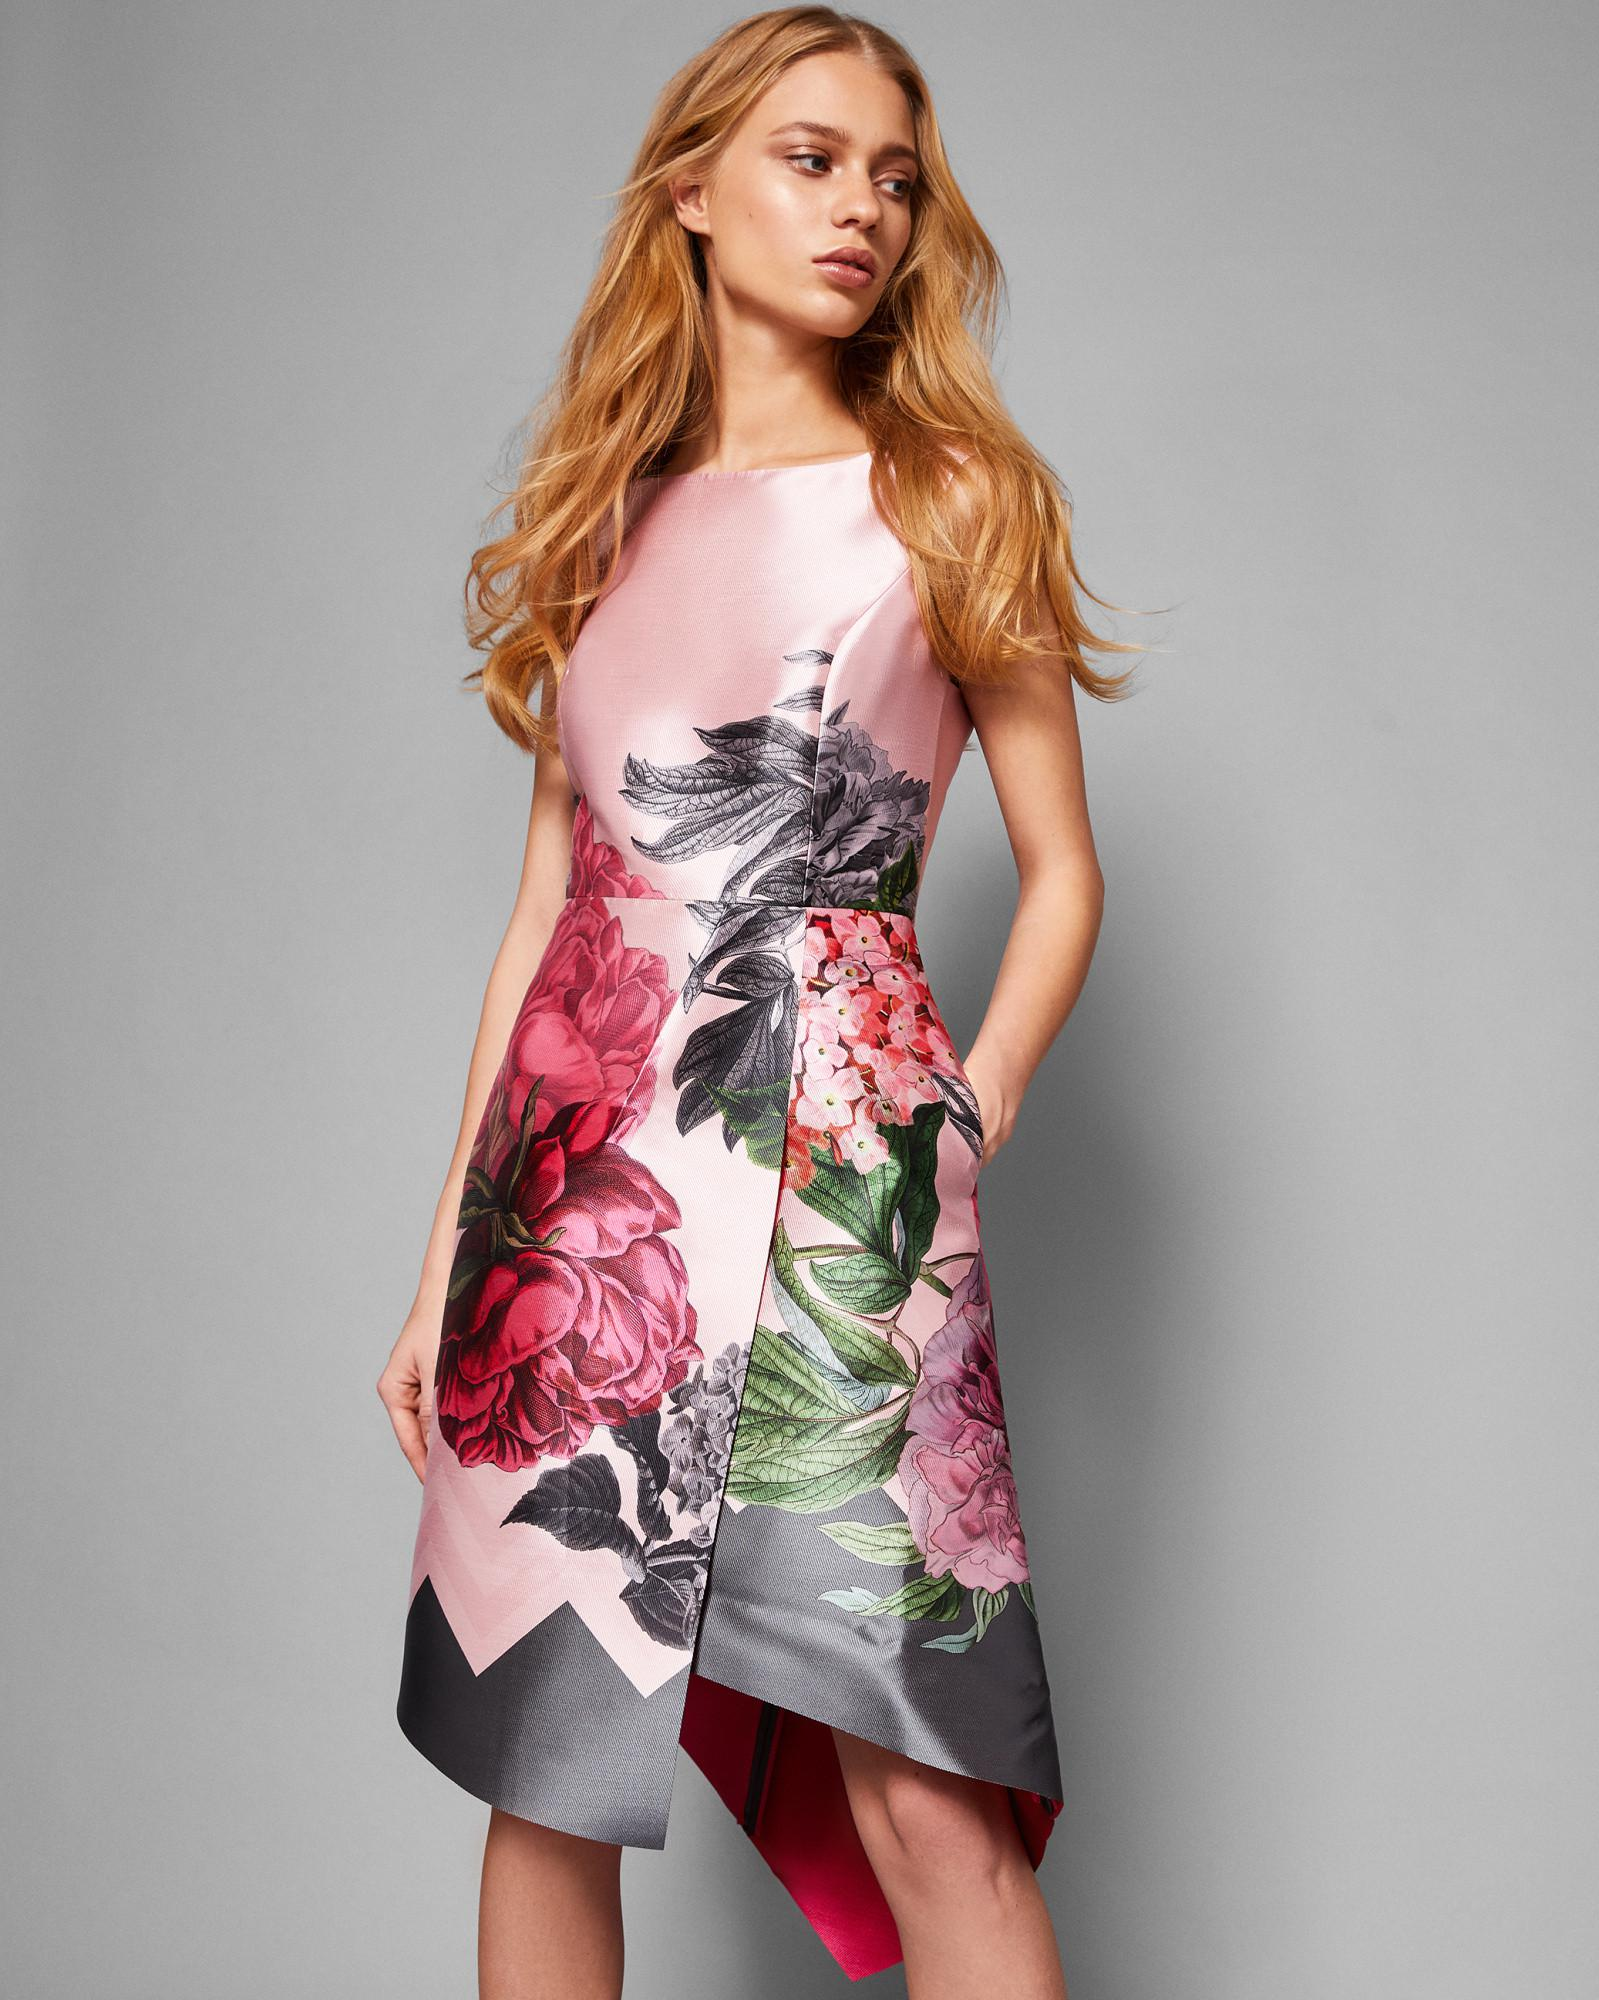 6c779ca468a5fc Ted Baker Palace Gardens Asymmetric Dress in Gray - Lyst